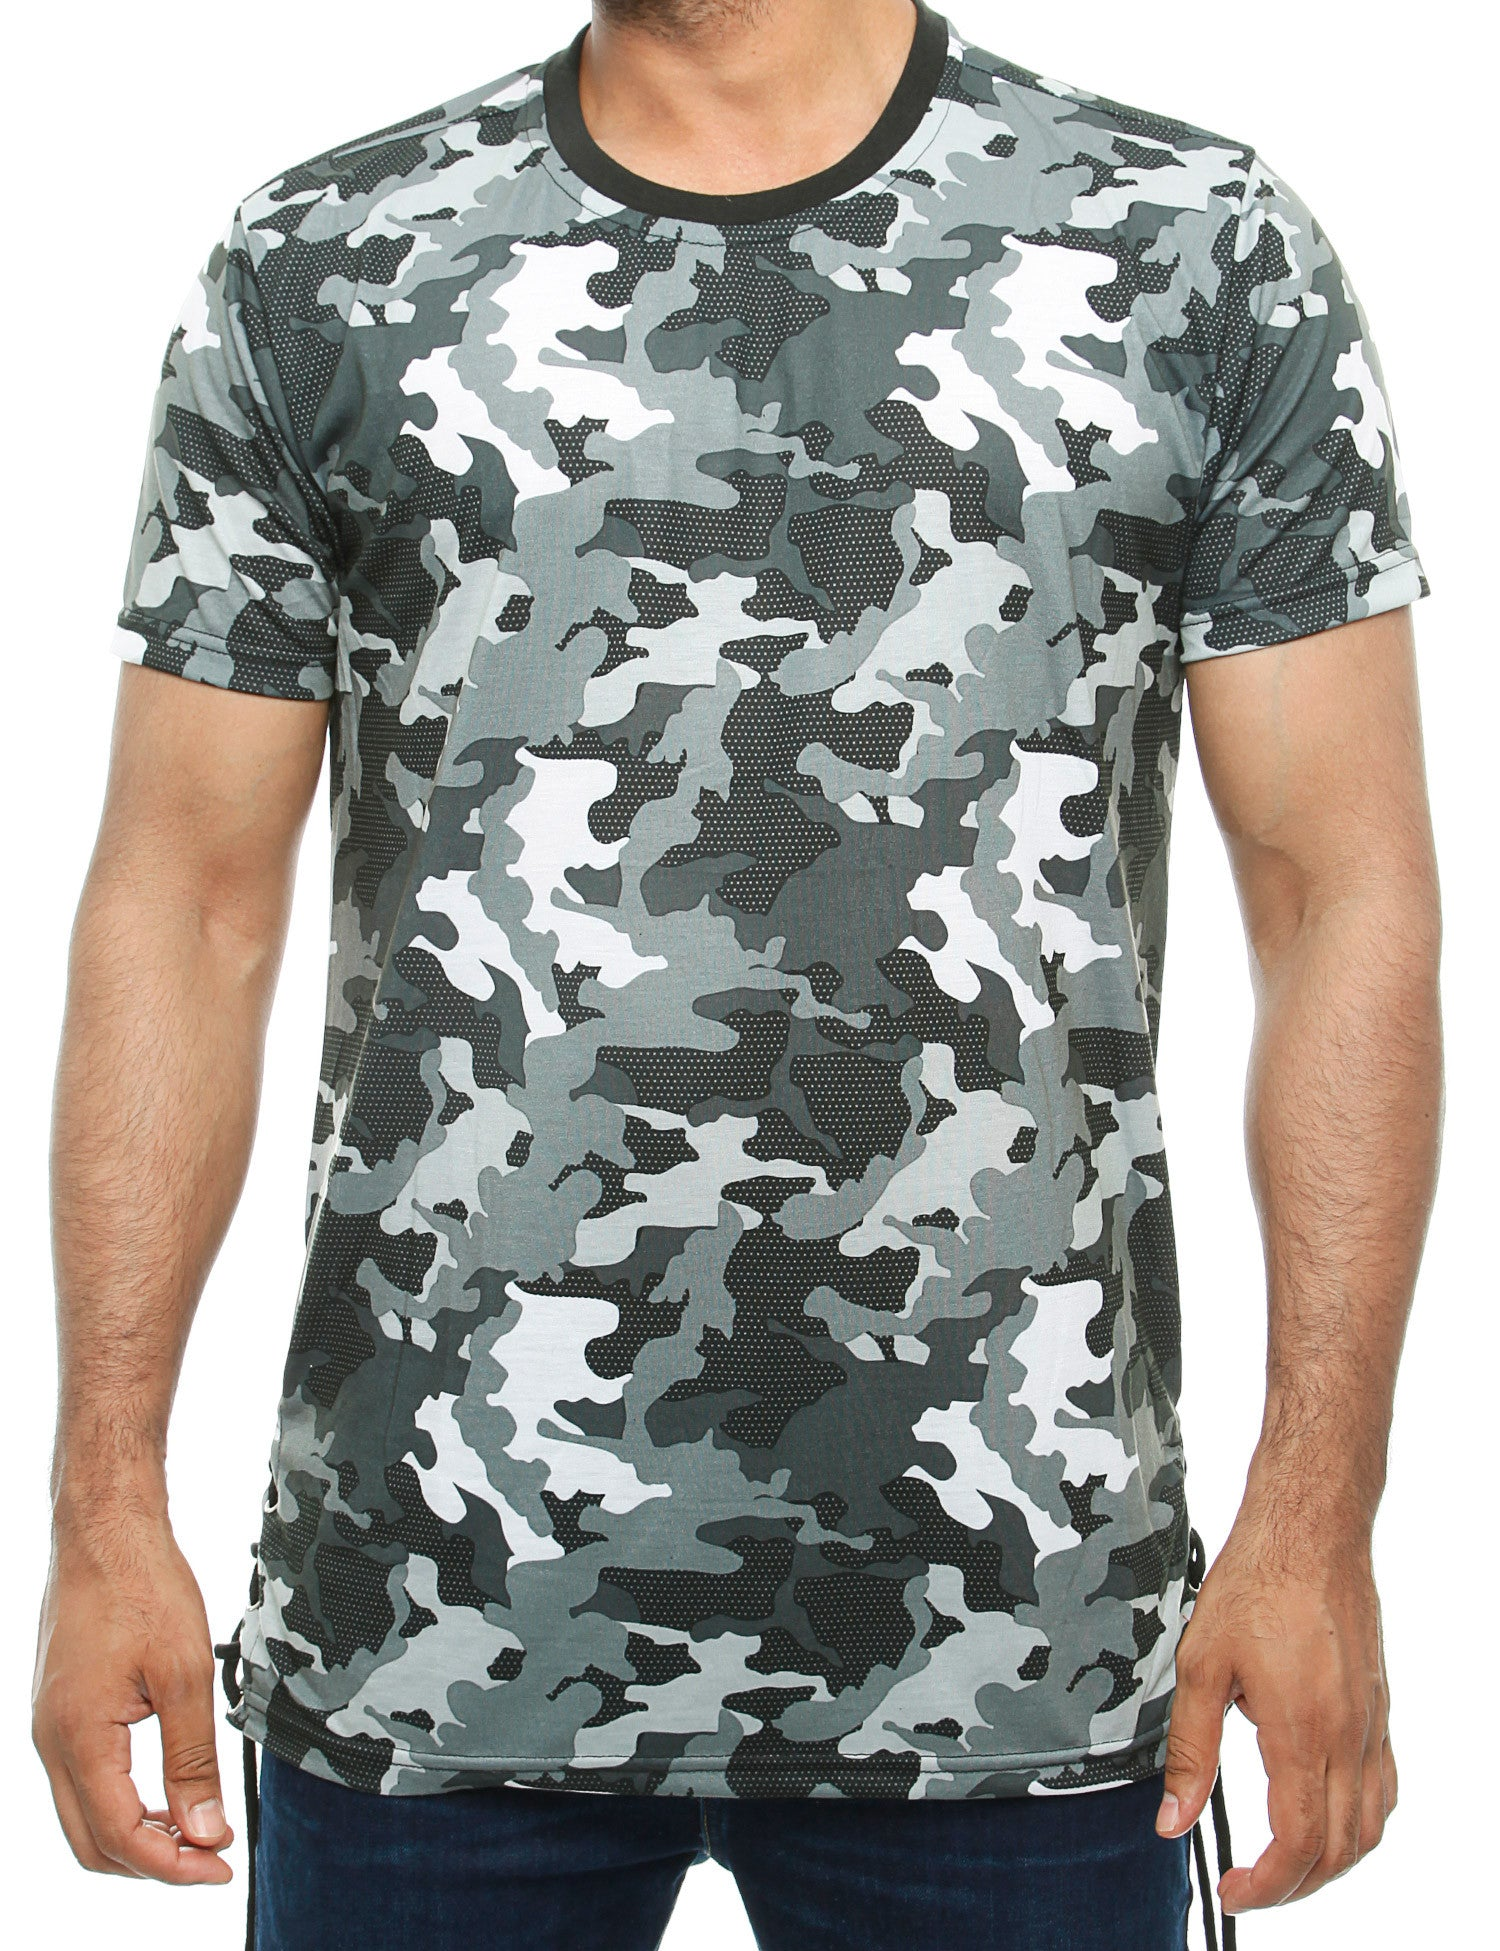 Imperious Camo Long T-Shirt TS603 Black